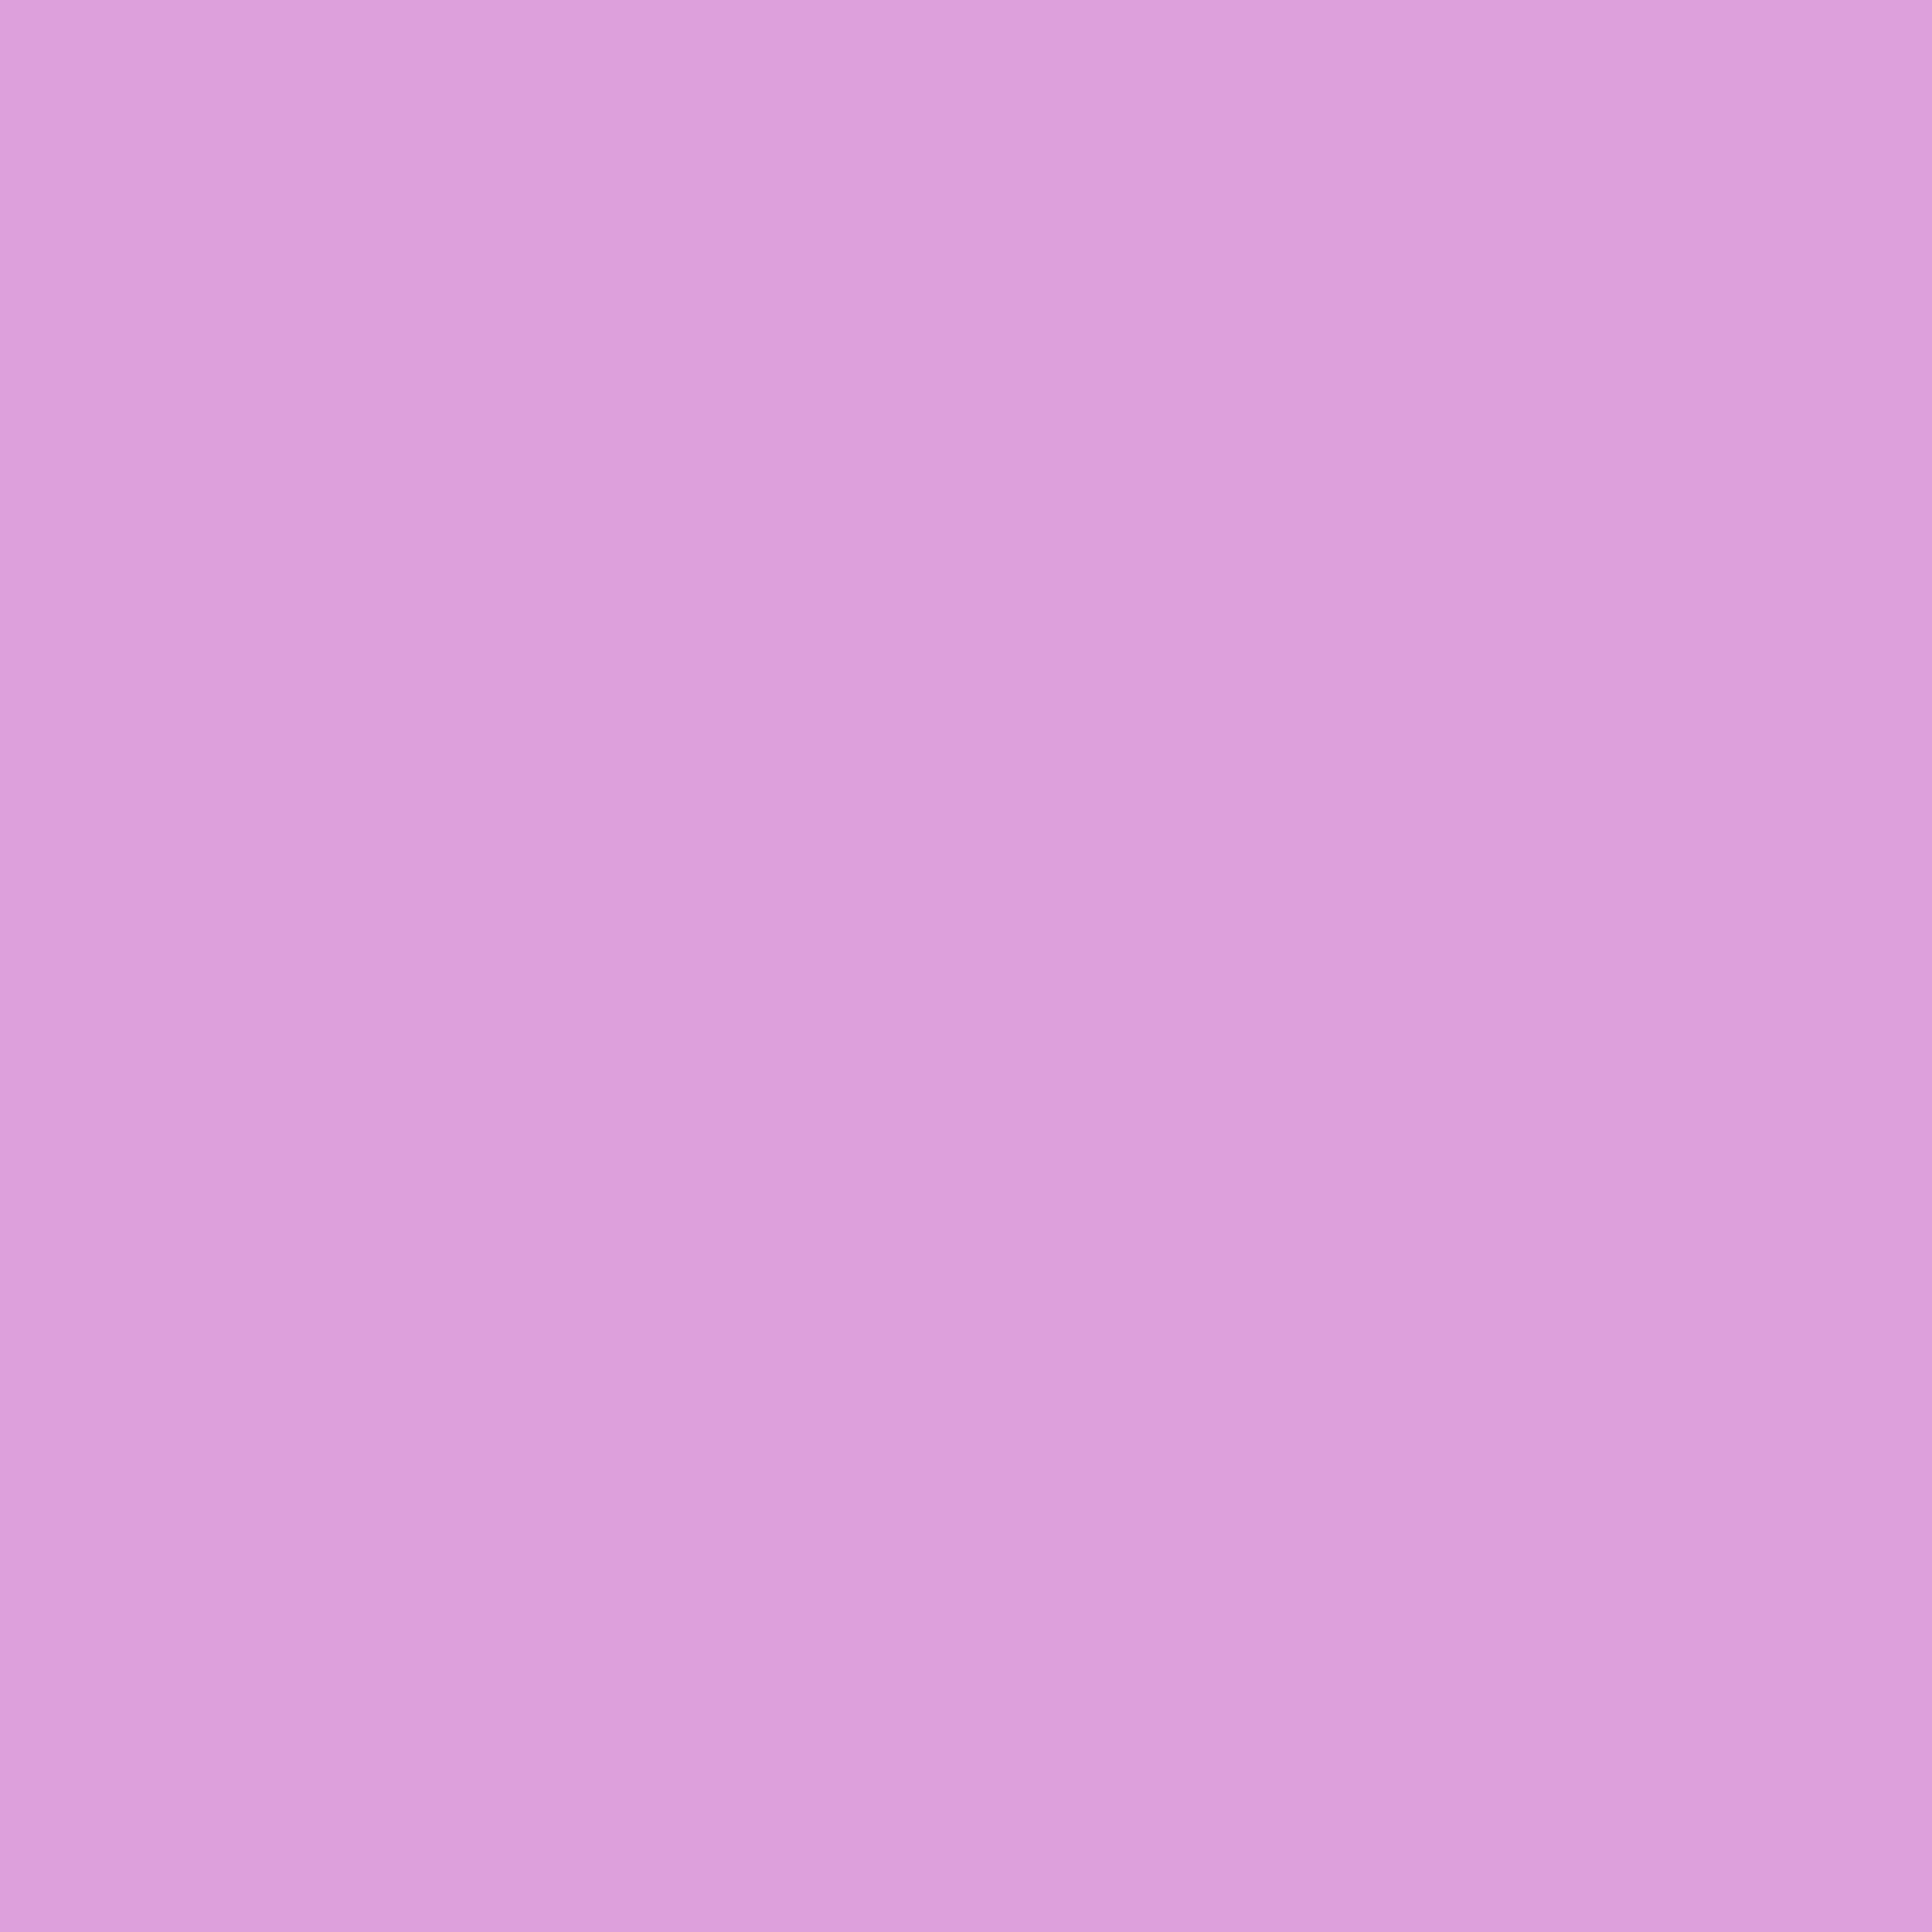 3600x3600 Pale Plum Solid Color Background 3600x3600